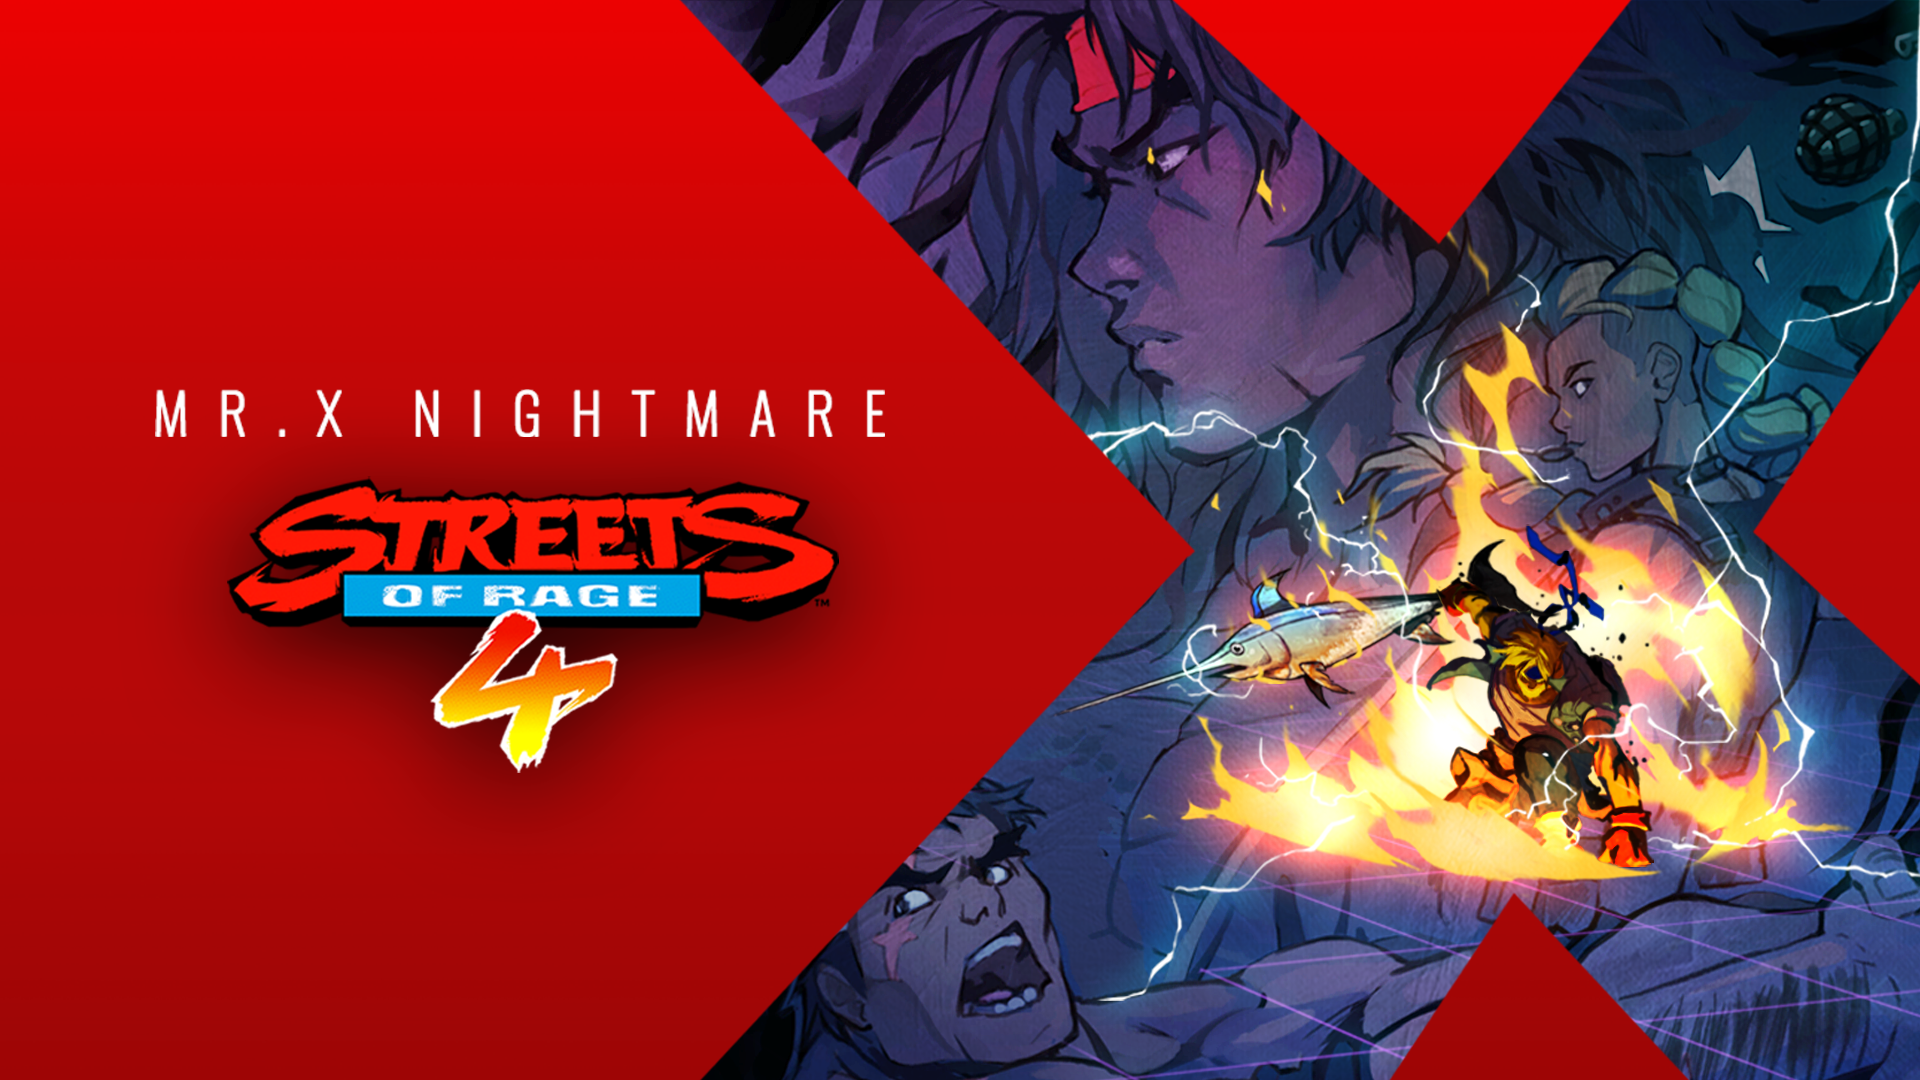 Shiva joins forces with Estel and Max in Streets of Rage 4 DLC Mr. X Nightmare